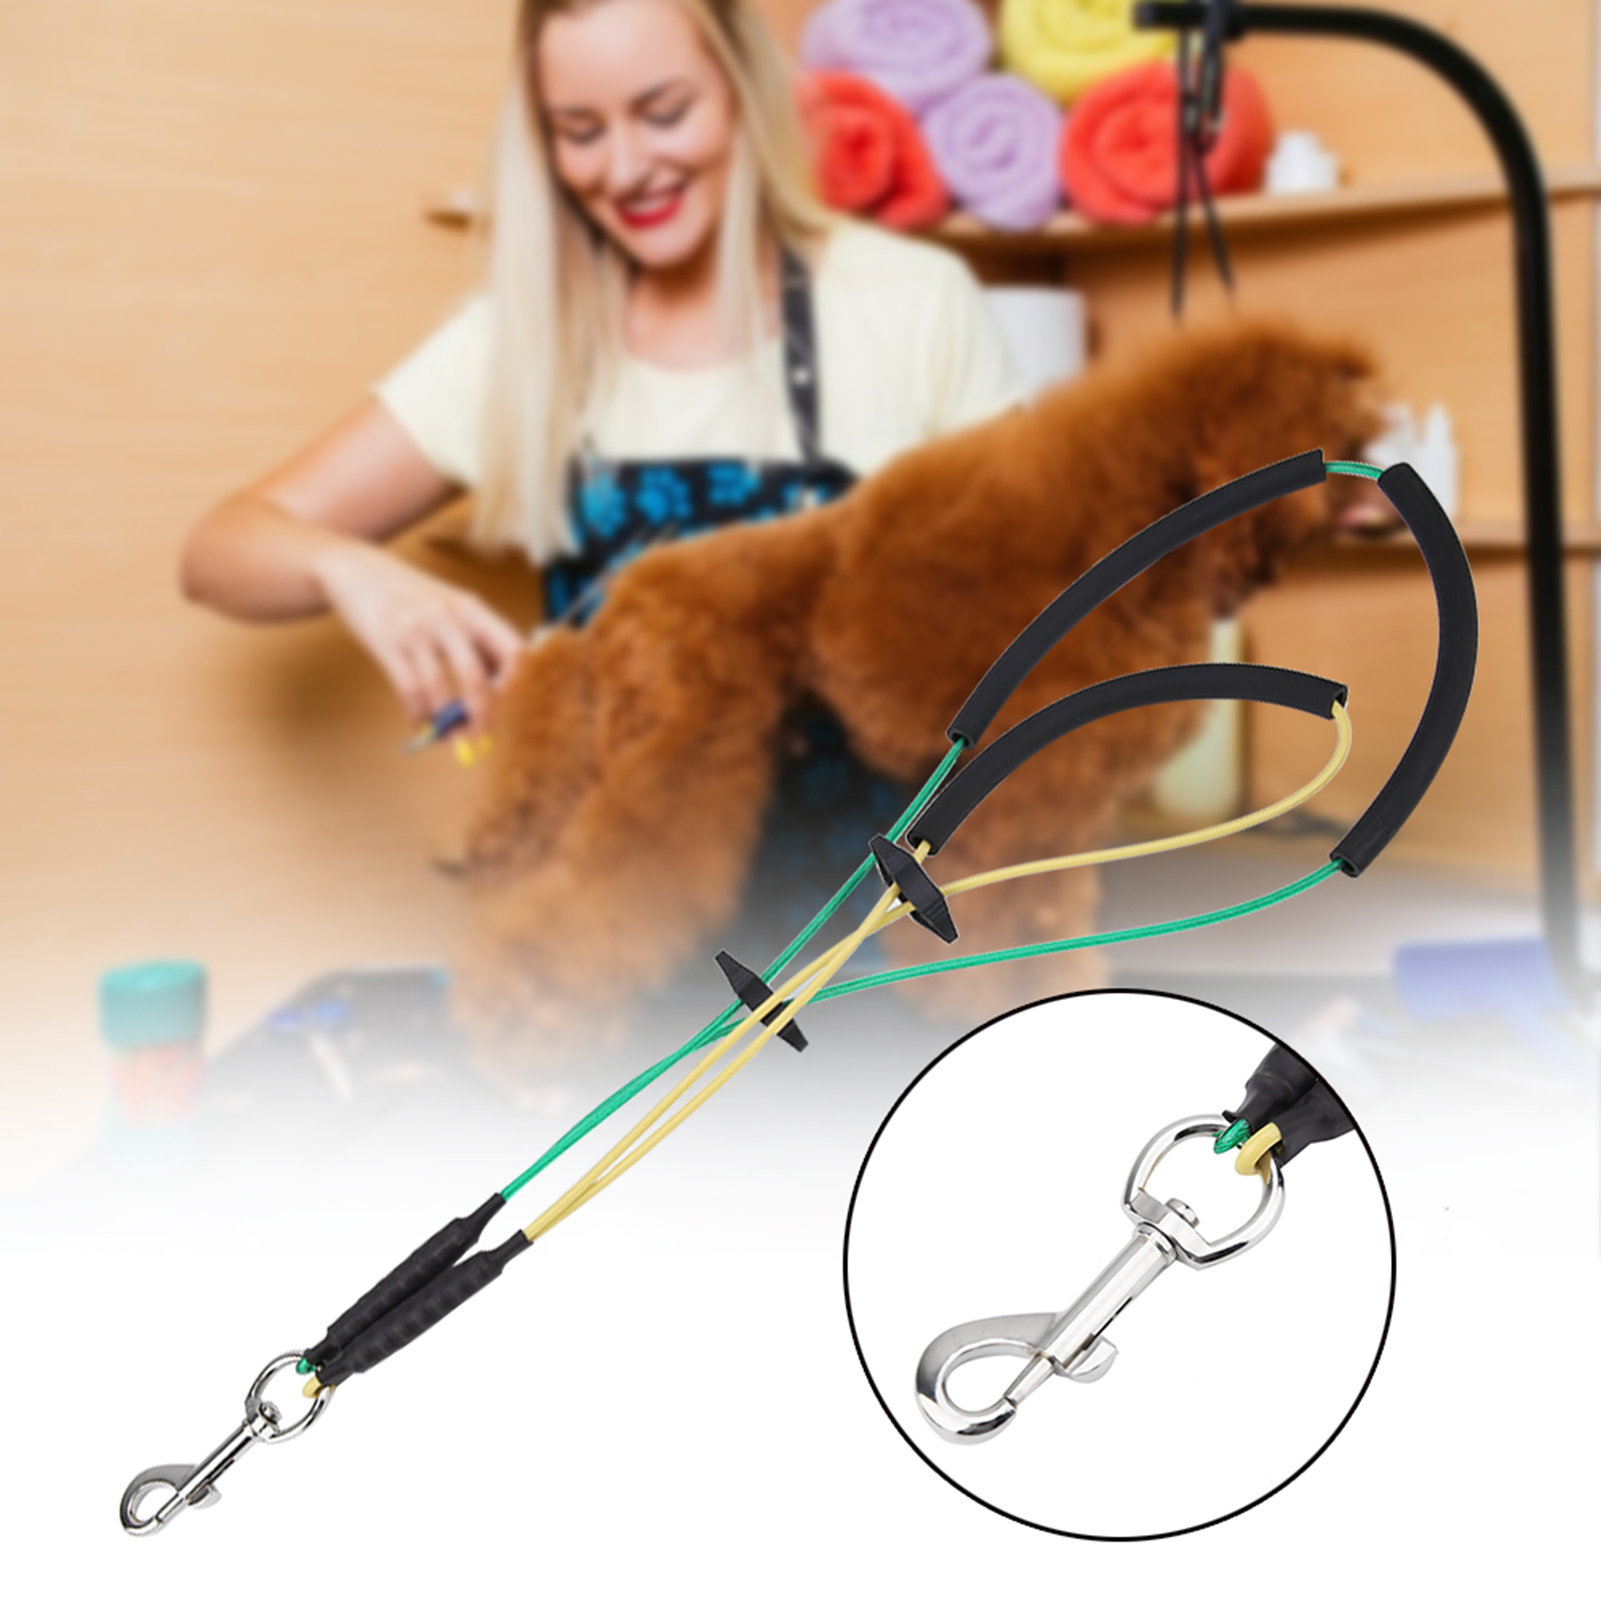 2019-Pet-Noose-Loop-Lock-Clip-Rope-Lead-For-Grooming-Table-Arm-Bath-Adjustable thumbnail 17